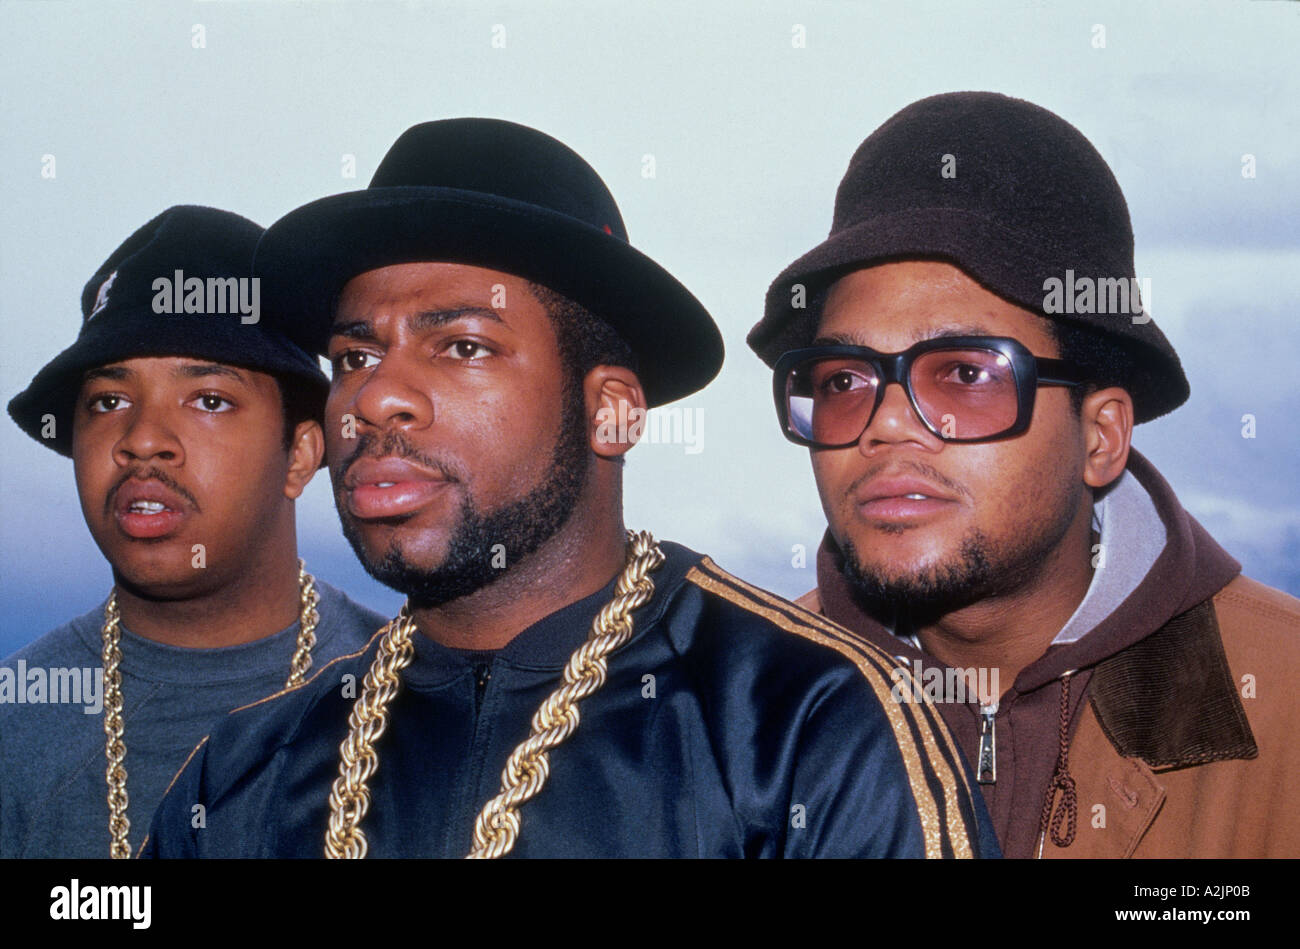 RUN DMC US rap group - Stock Image